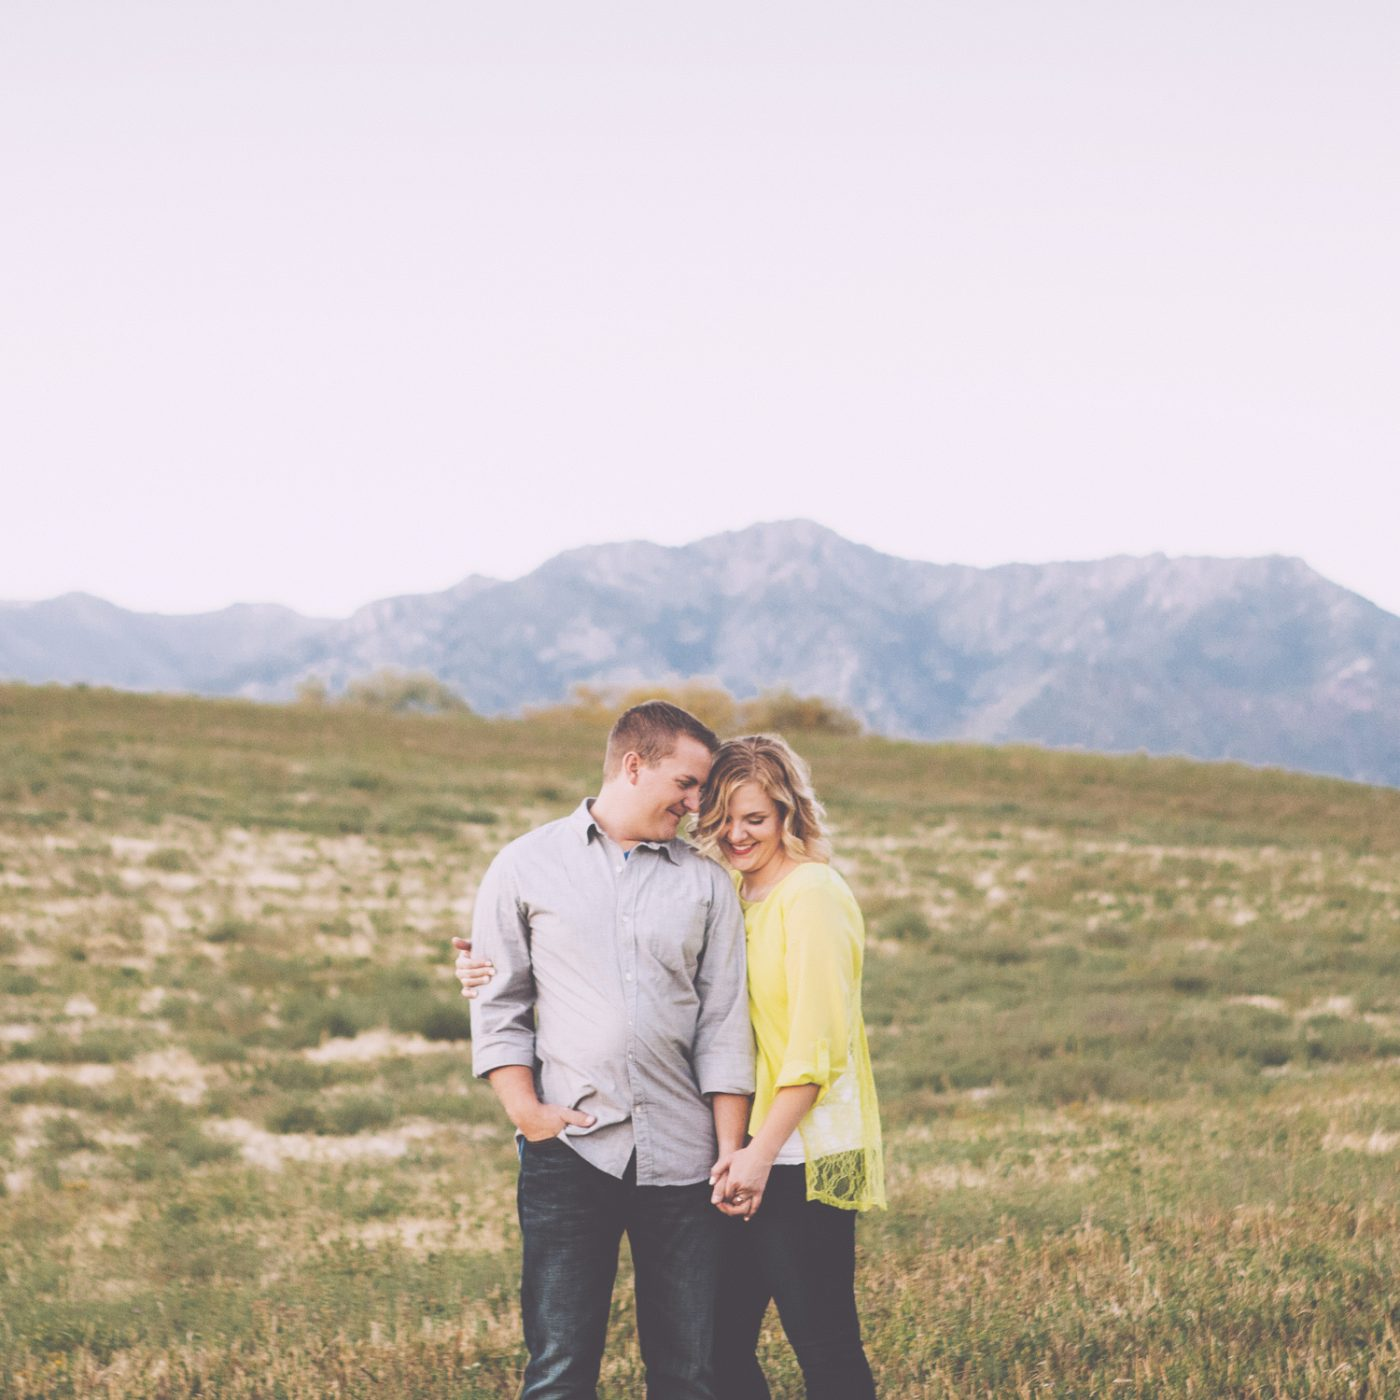 Bryan & Hollee | Couples Session